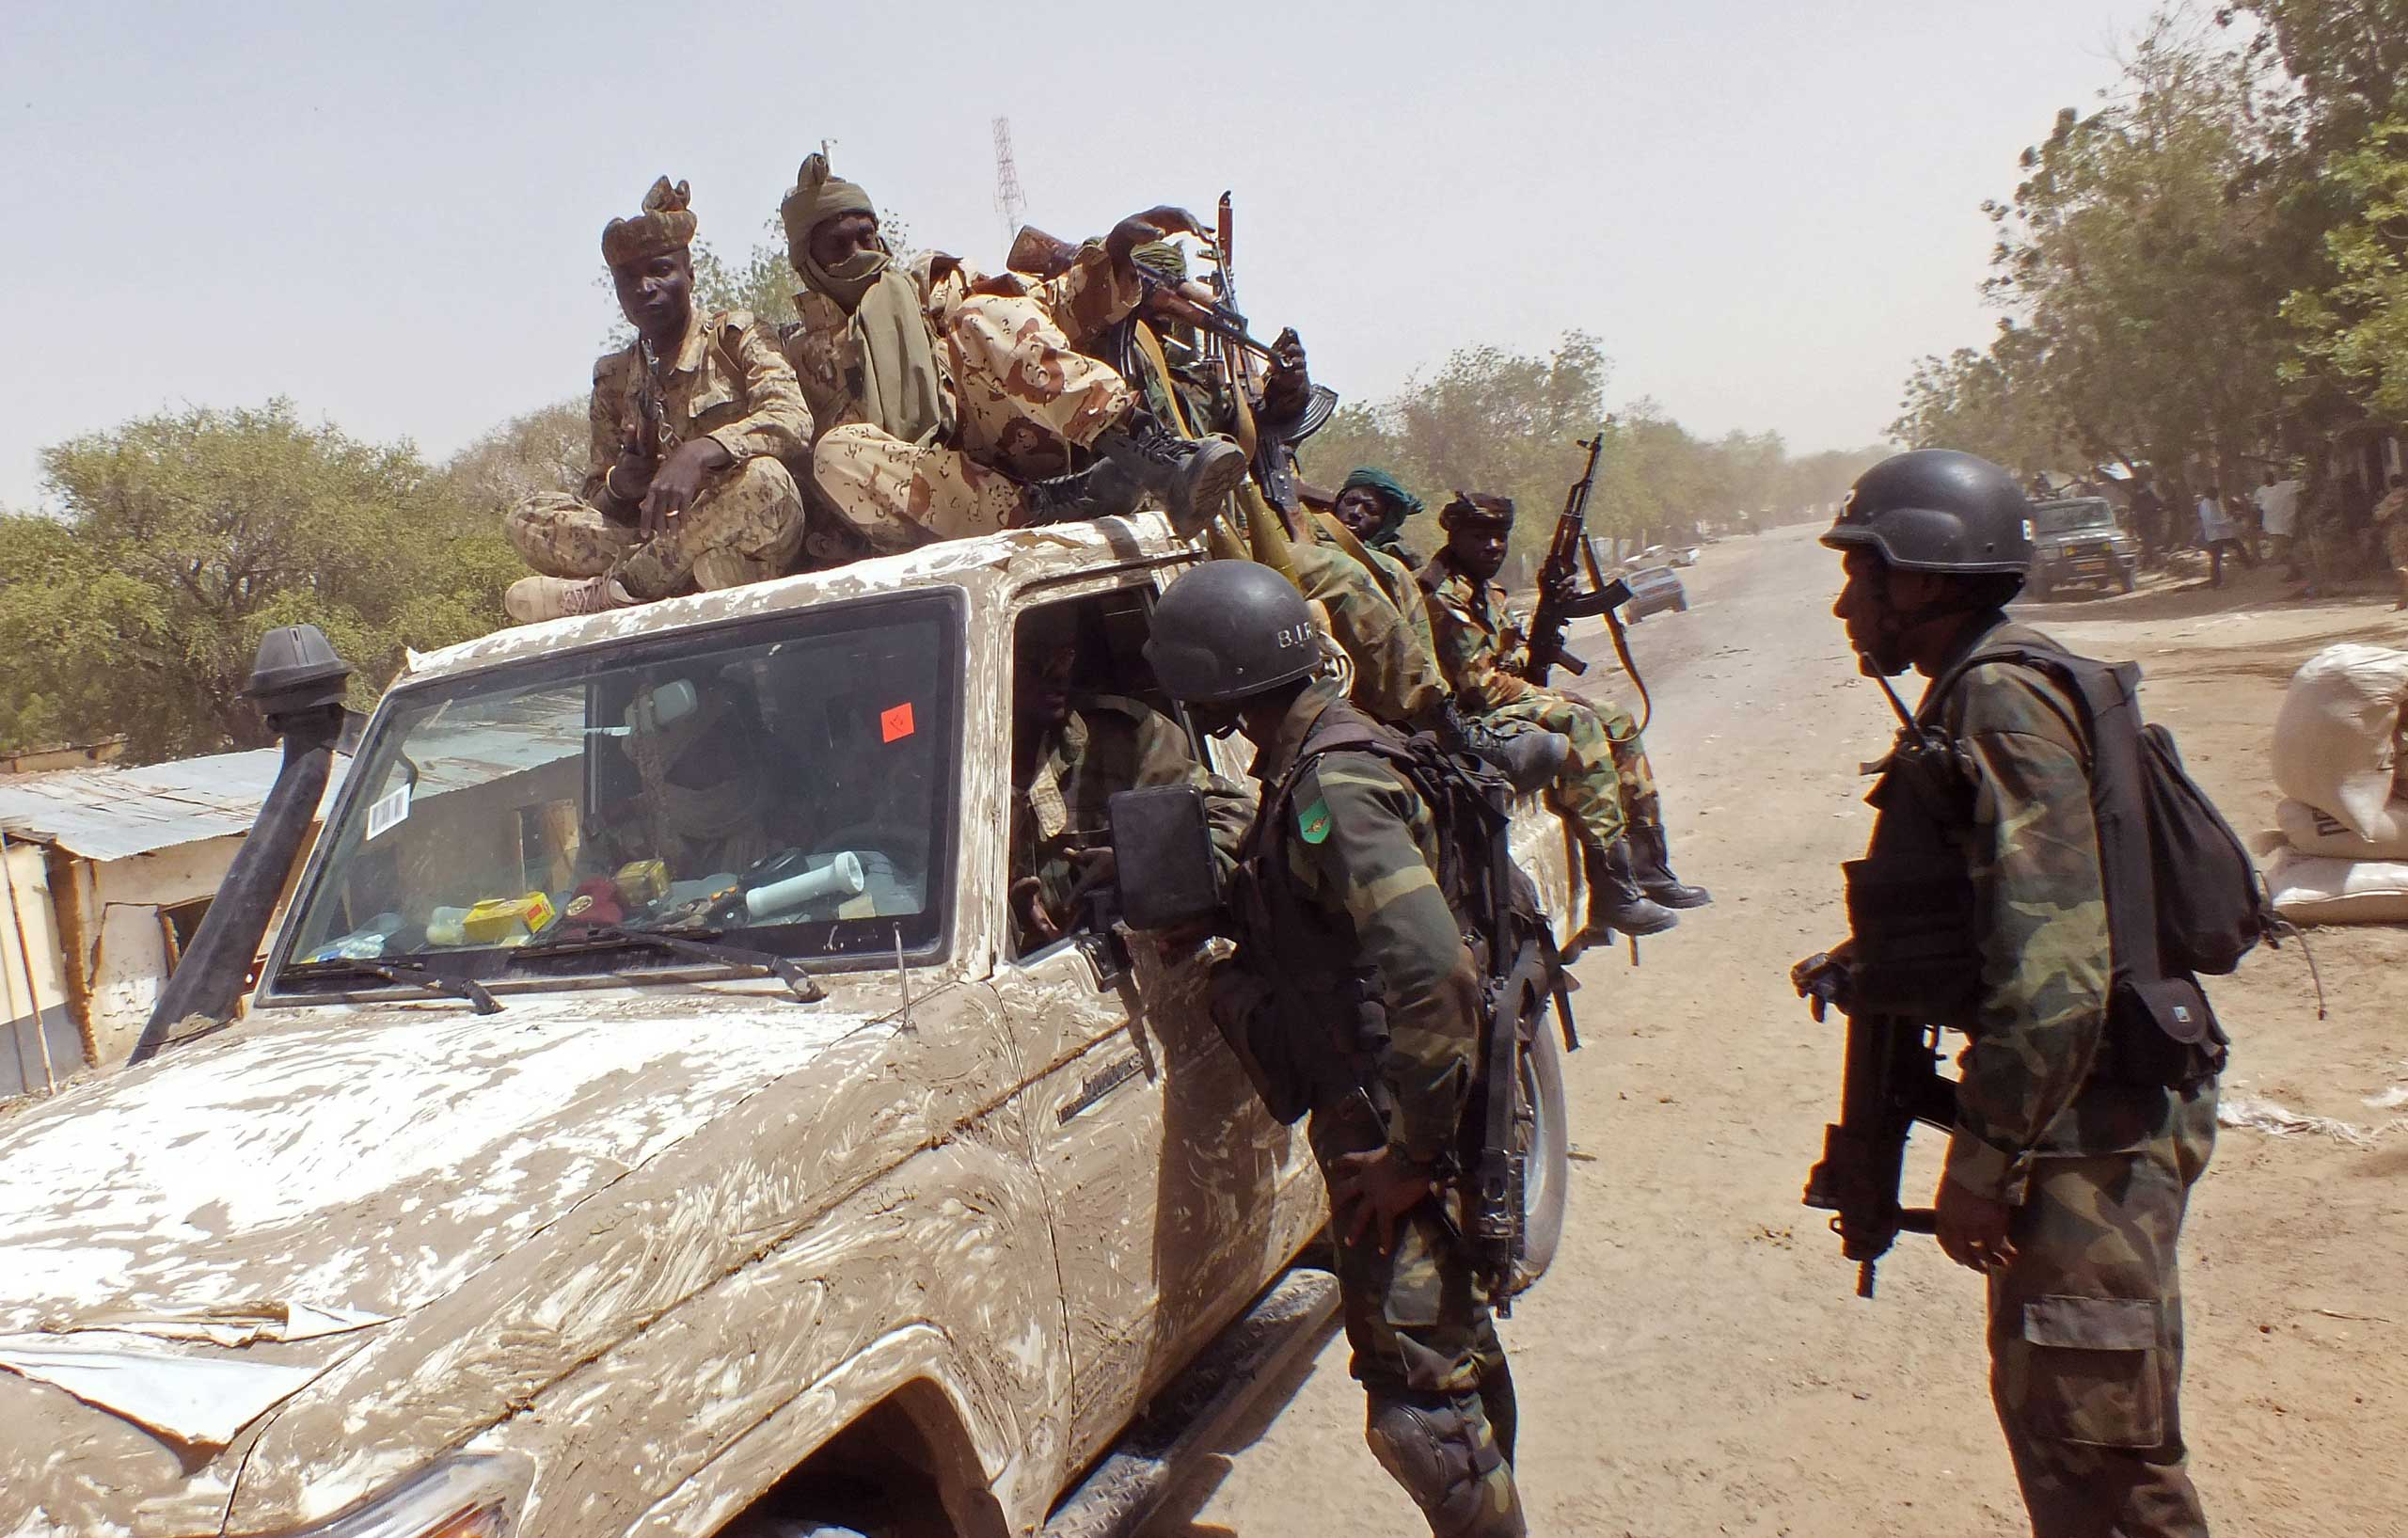 Chadian soldiers on top of a truck, left,  speak to Cameroon soldiers, right, standing next to the truck, on the border between Cameroon and Nigeria as they form part of the force to combat regional Islamic extremists force's including Boko Haram, near the town of  Gambarou, Nigeria, Feb. 19, 2015.